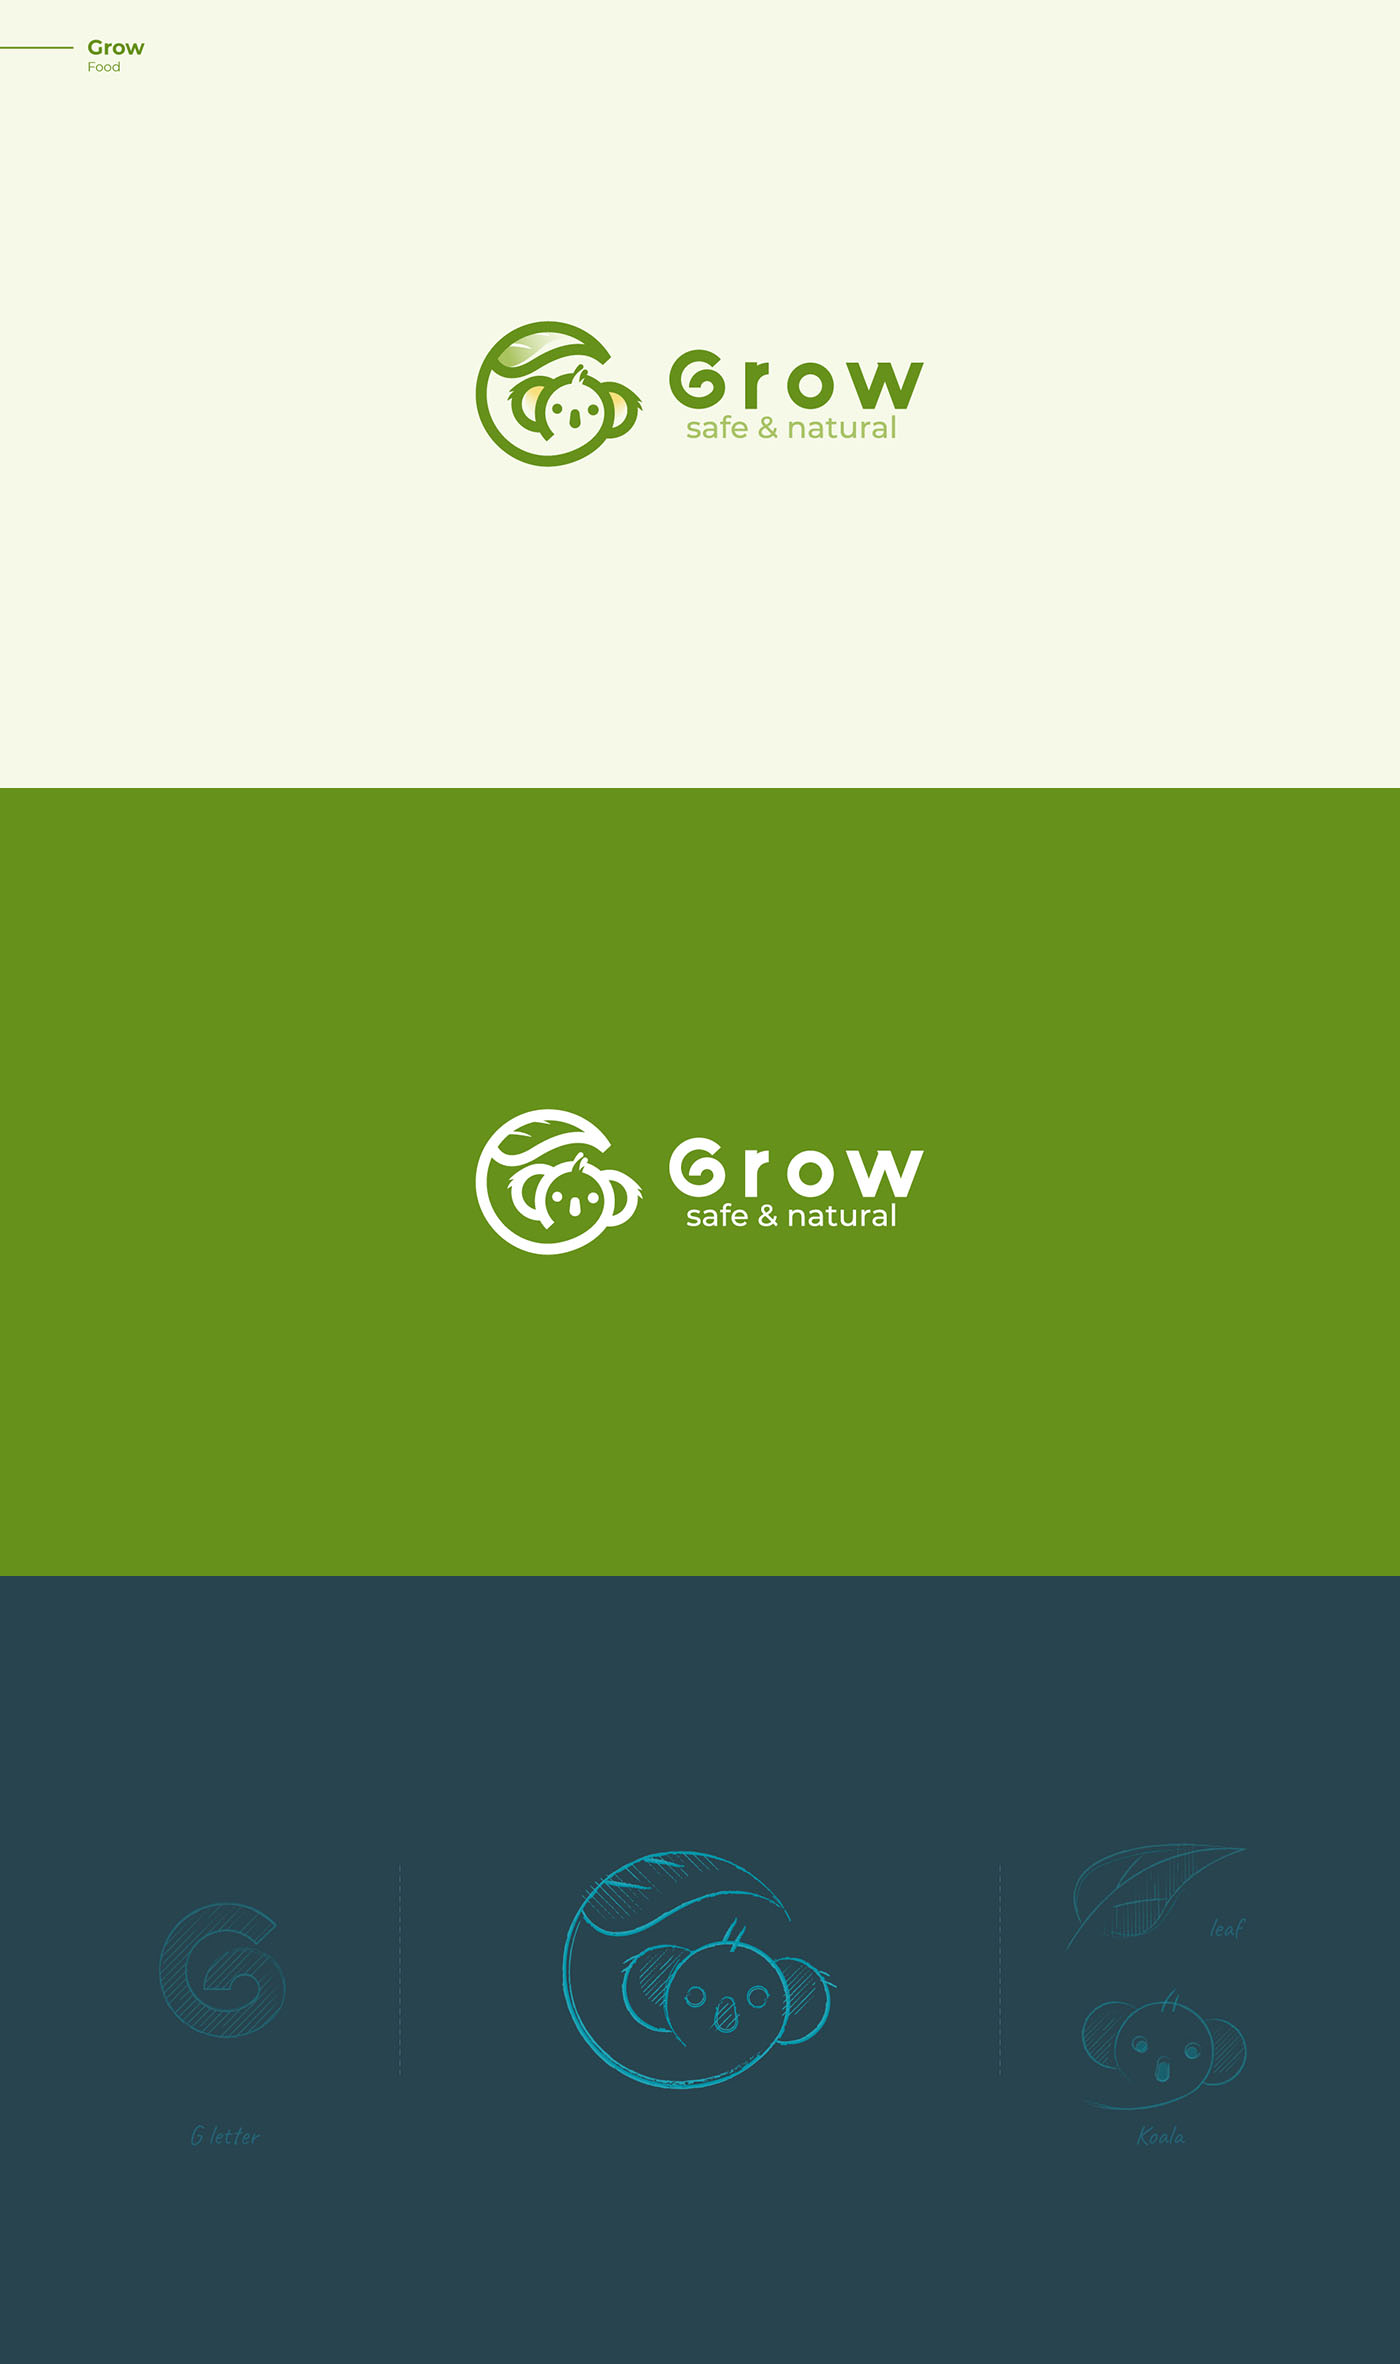 Koala - Grow logo - Sketch & ideas logo